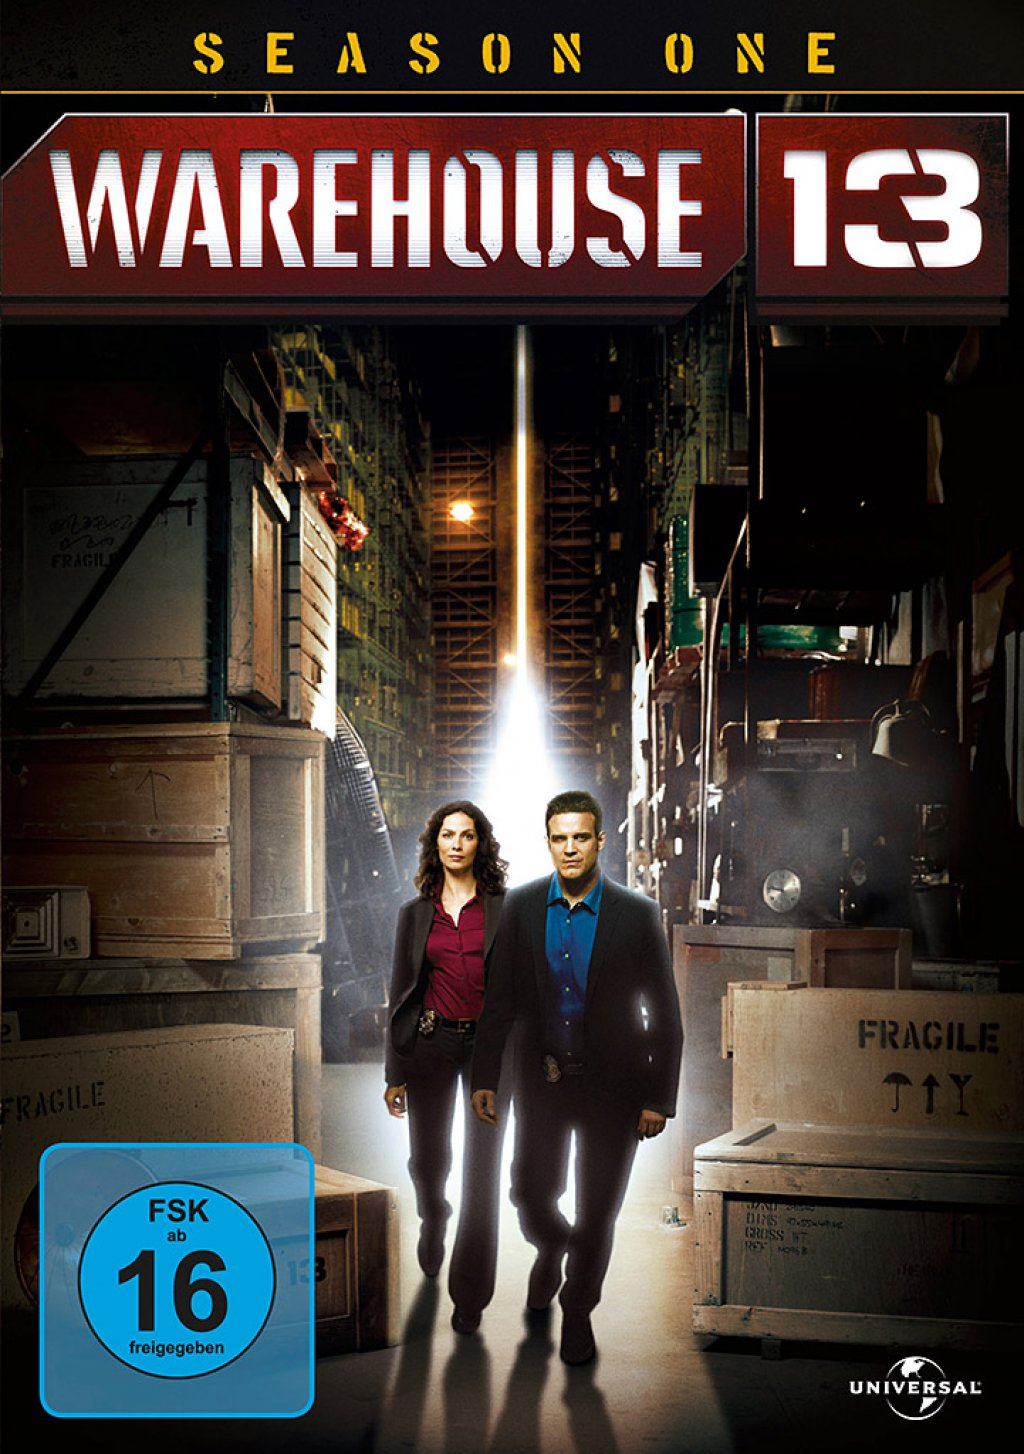 Warehouse 13 - Season 1 (DVD)